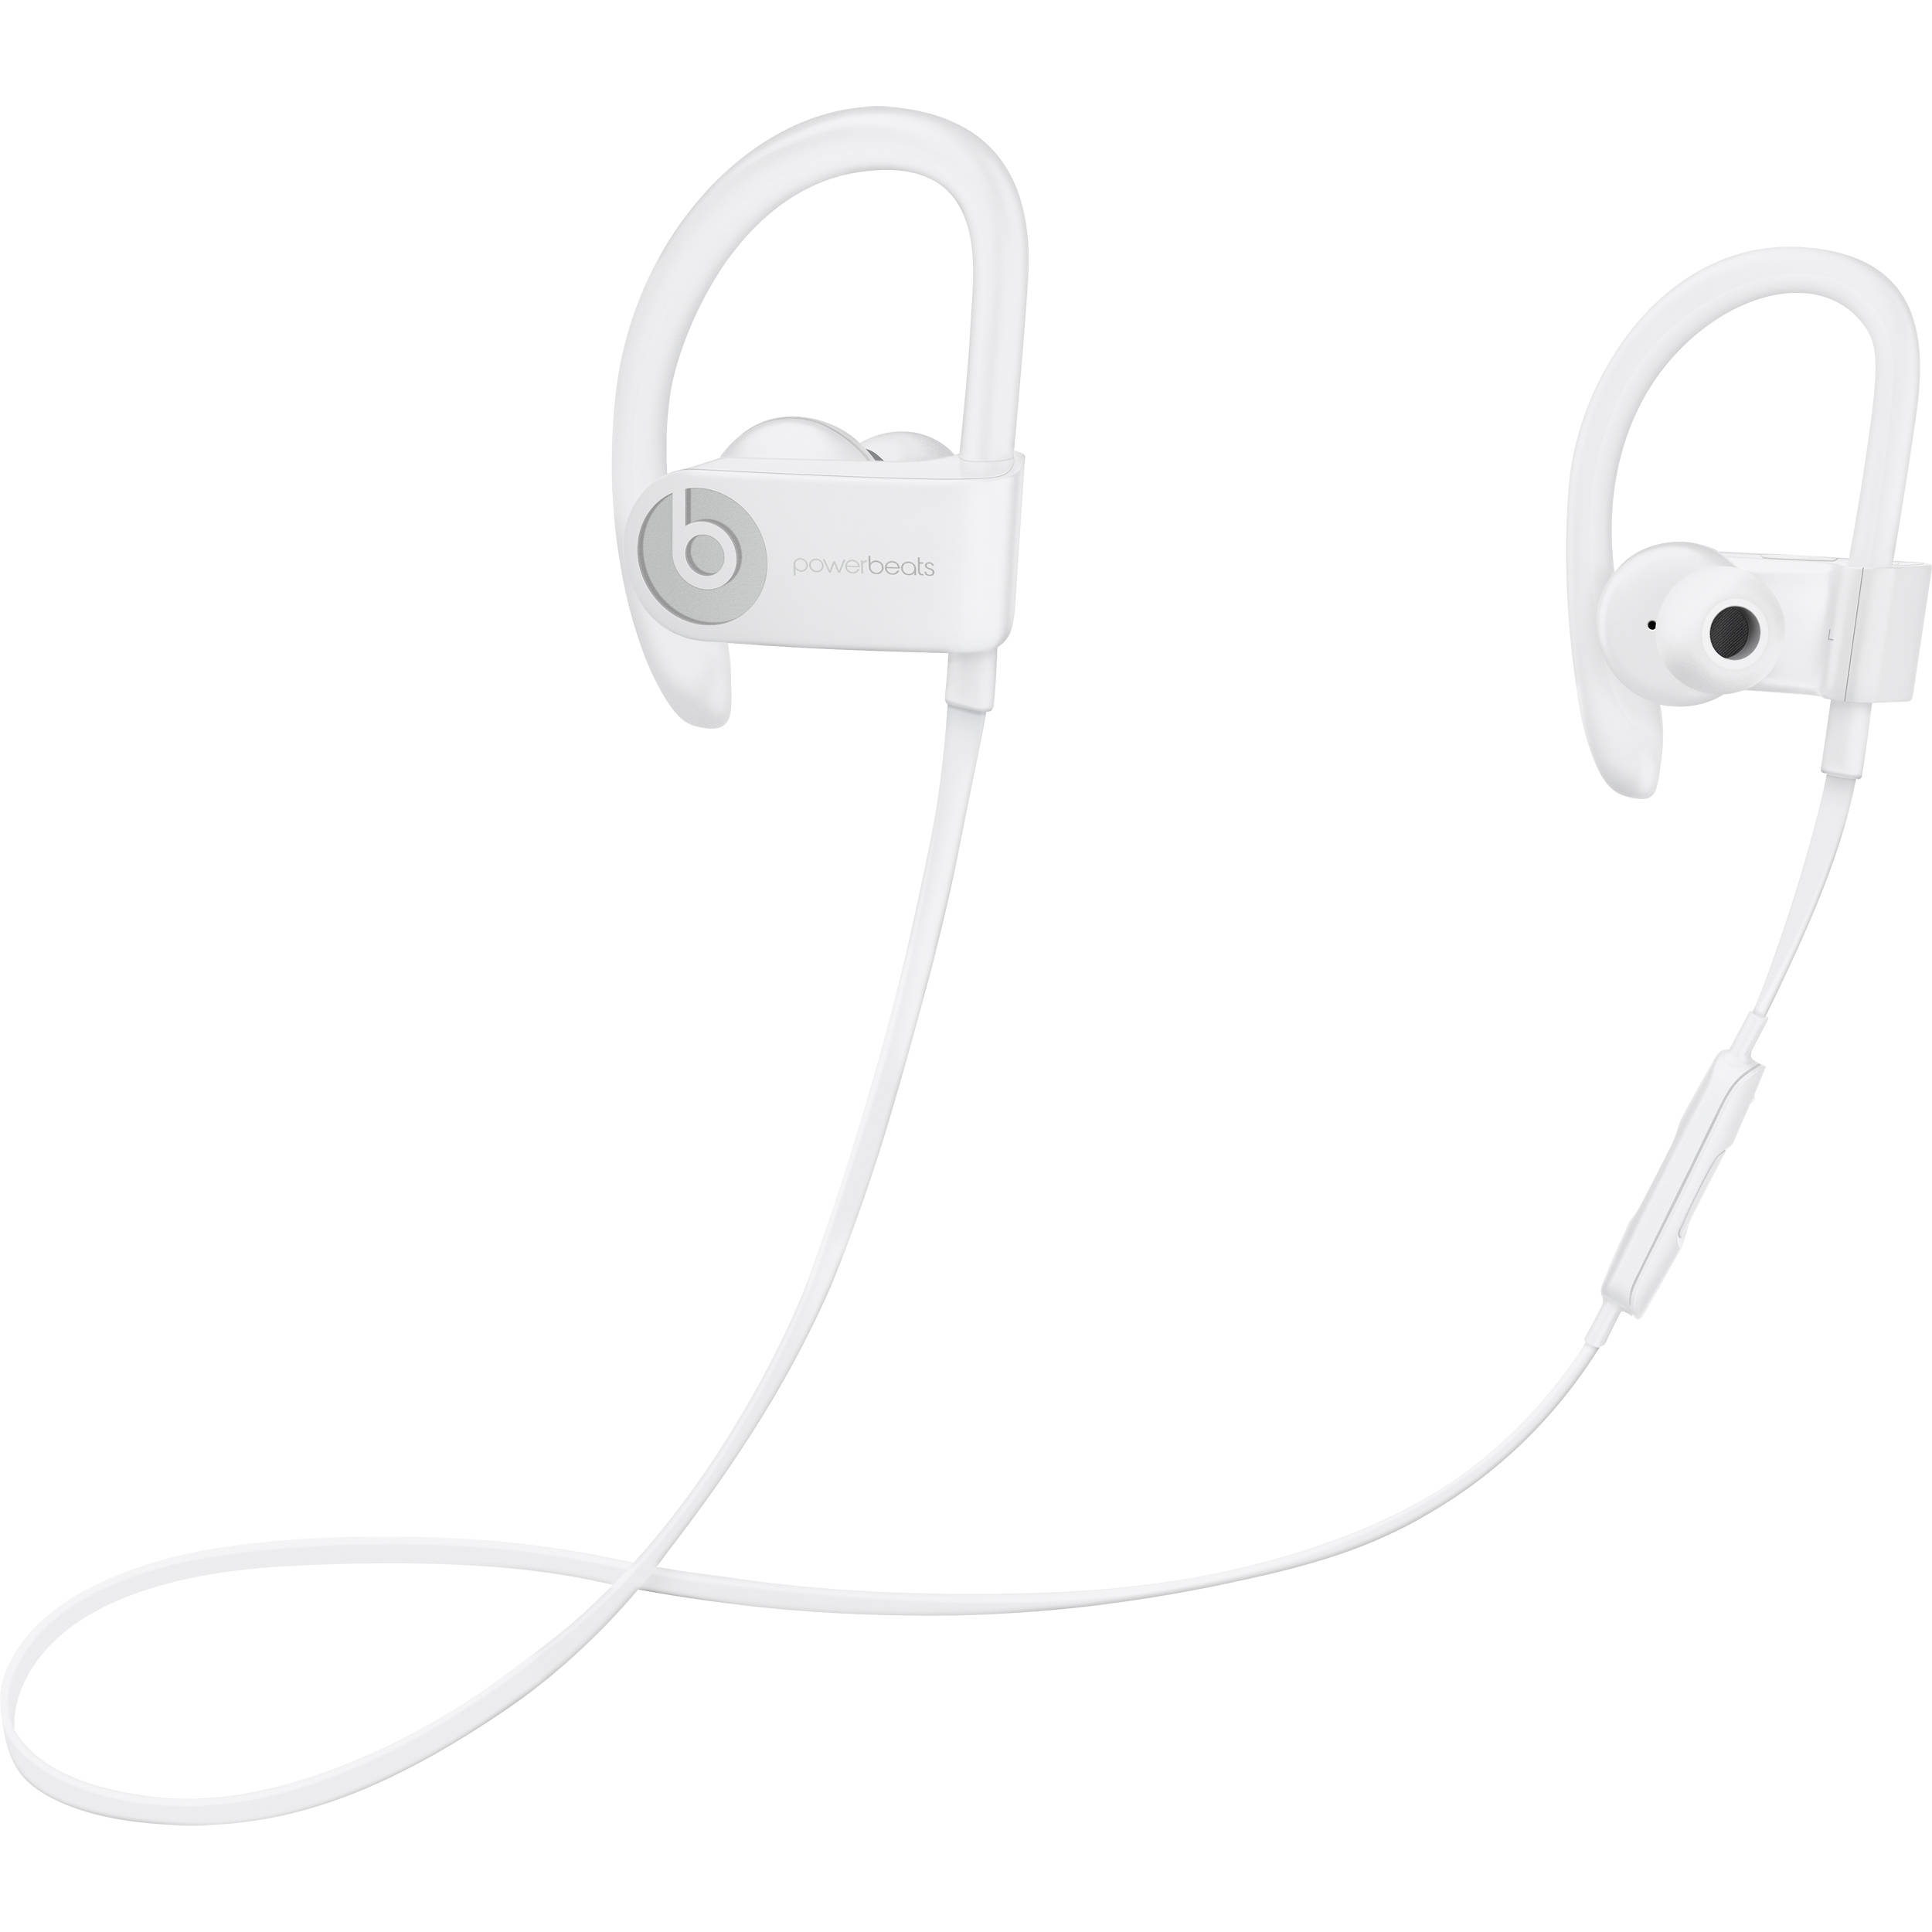 647aee61e69 beats_by_dr_dre_ml8w2ll_a_powerbeats3_wireless_earphones_1280787.jpg